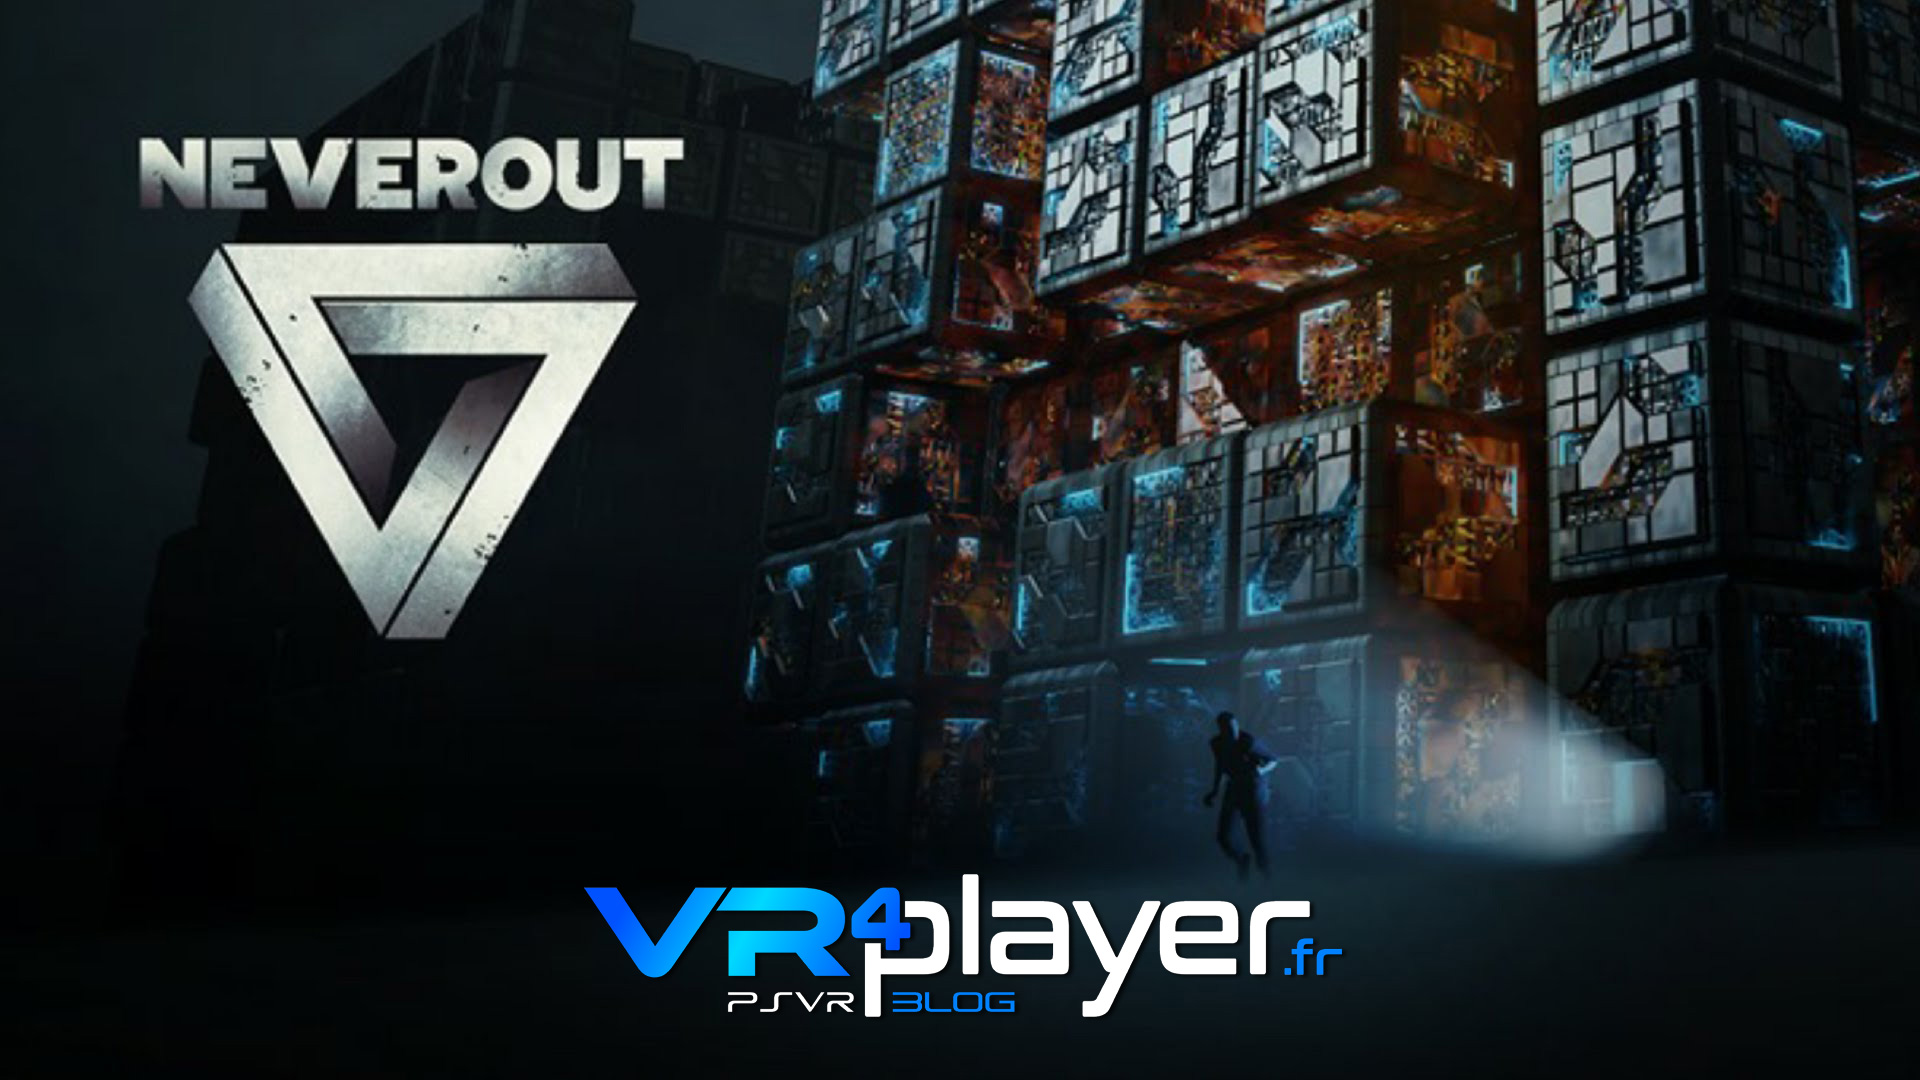 Neverout sur PSVR vr4player.fr